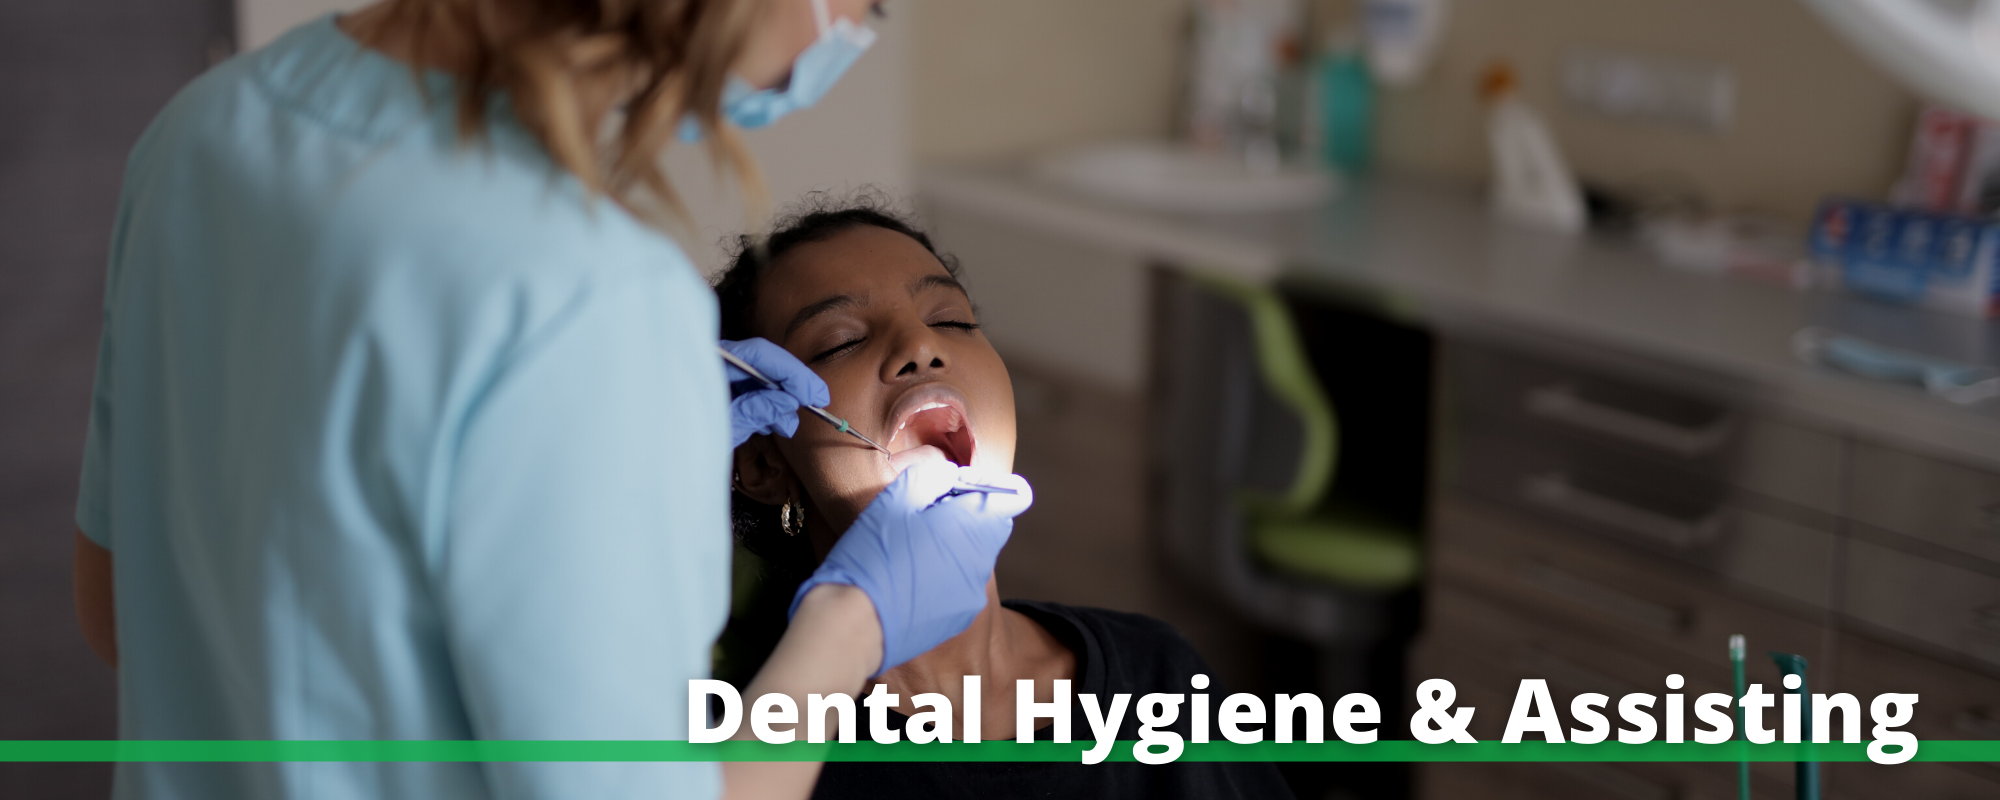 """Image of a dental hygienist cleaning a patient's teeth with the words """"Dental Hygiene & Assisting"""""""